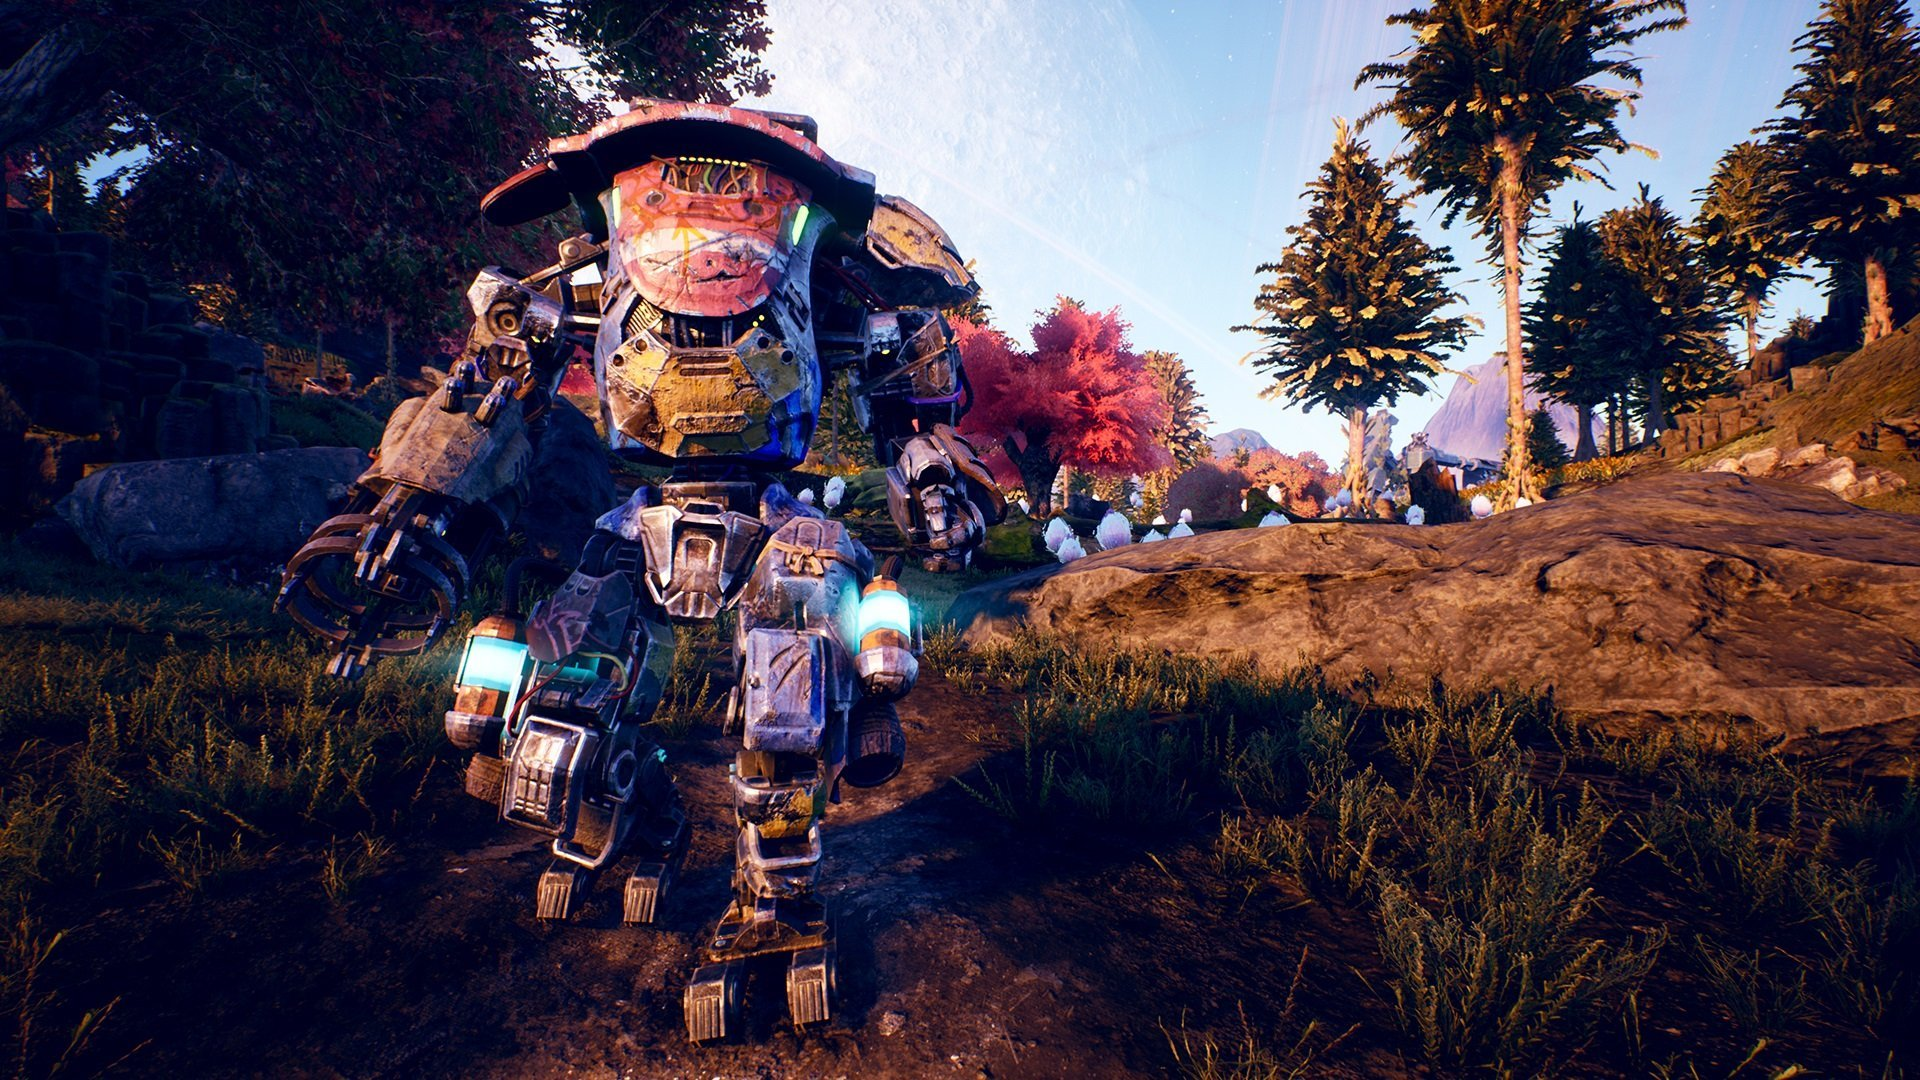 The Outer Worlds Game Wallpaper, HD Games 4K Wallpapers ...